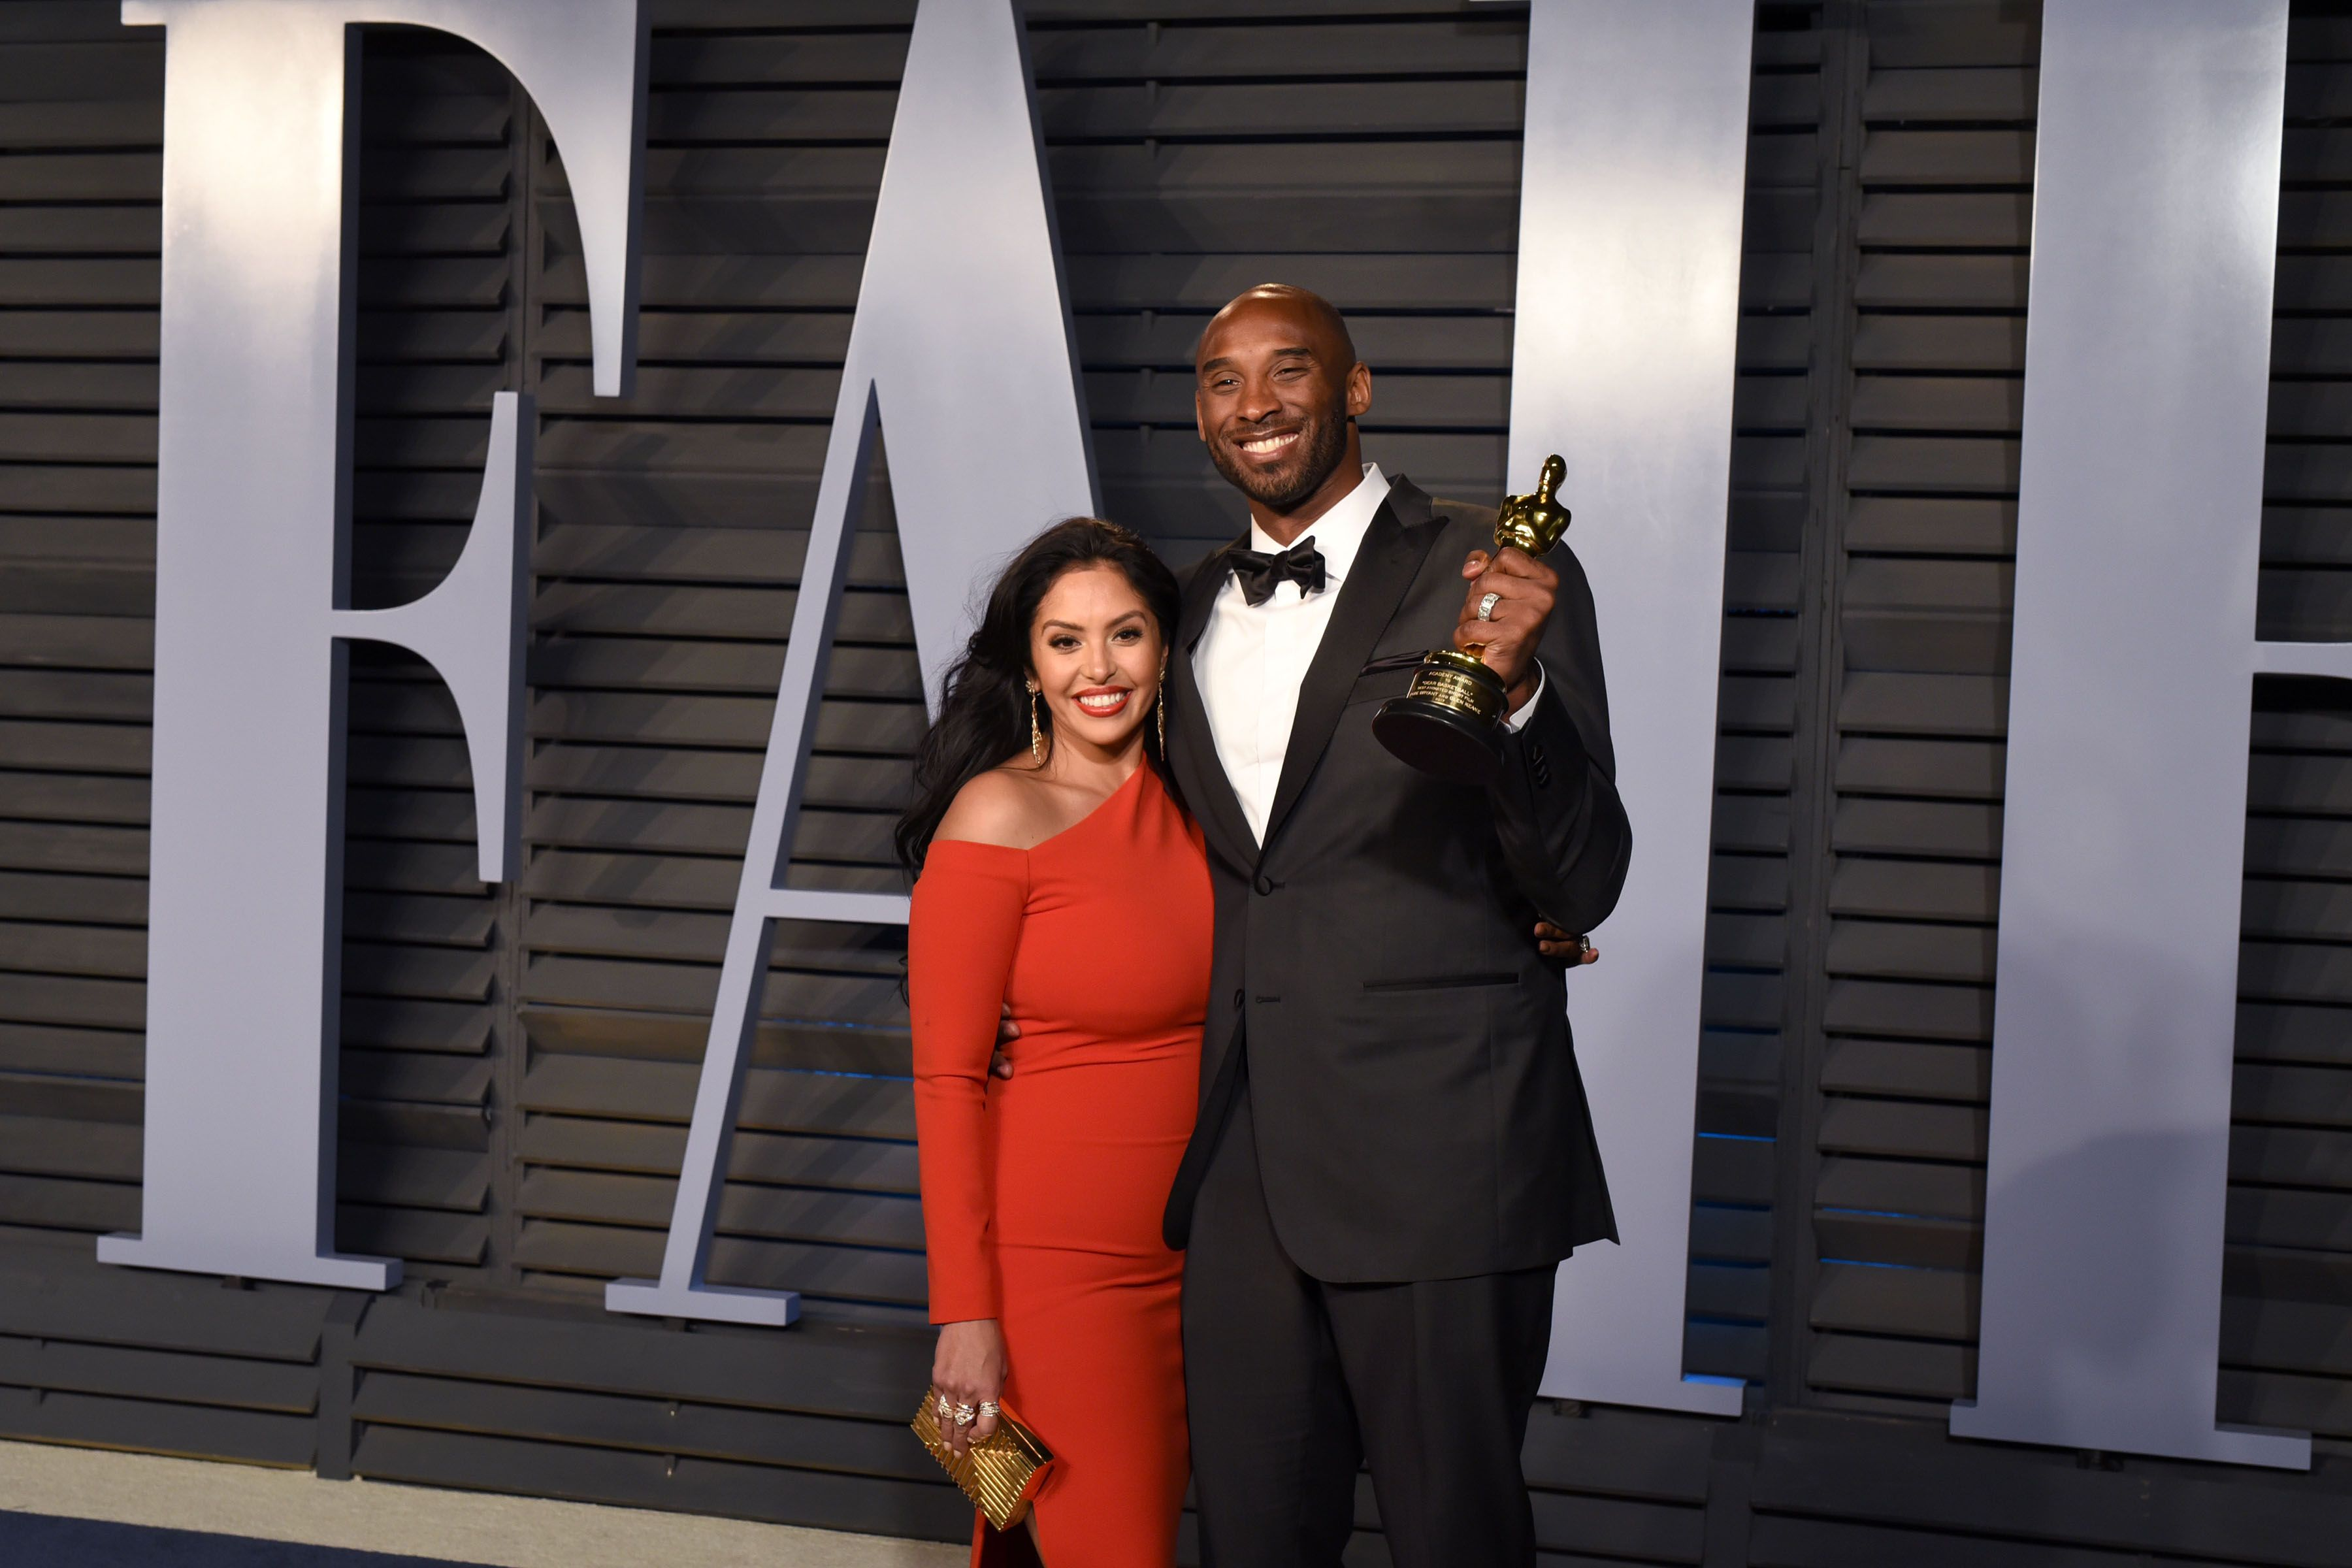 Vanessa Bryant and Kobe Bryant during the 2018 Vanity Fair Oscar Party at Wallis Annenberg Center for the Performing Arts on March 4, 2018 in Beverly Hills, CA. | Source: Getty Images